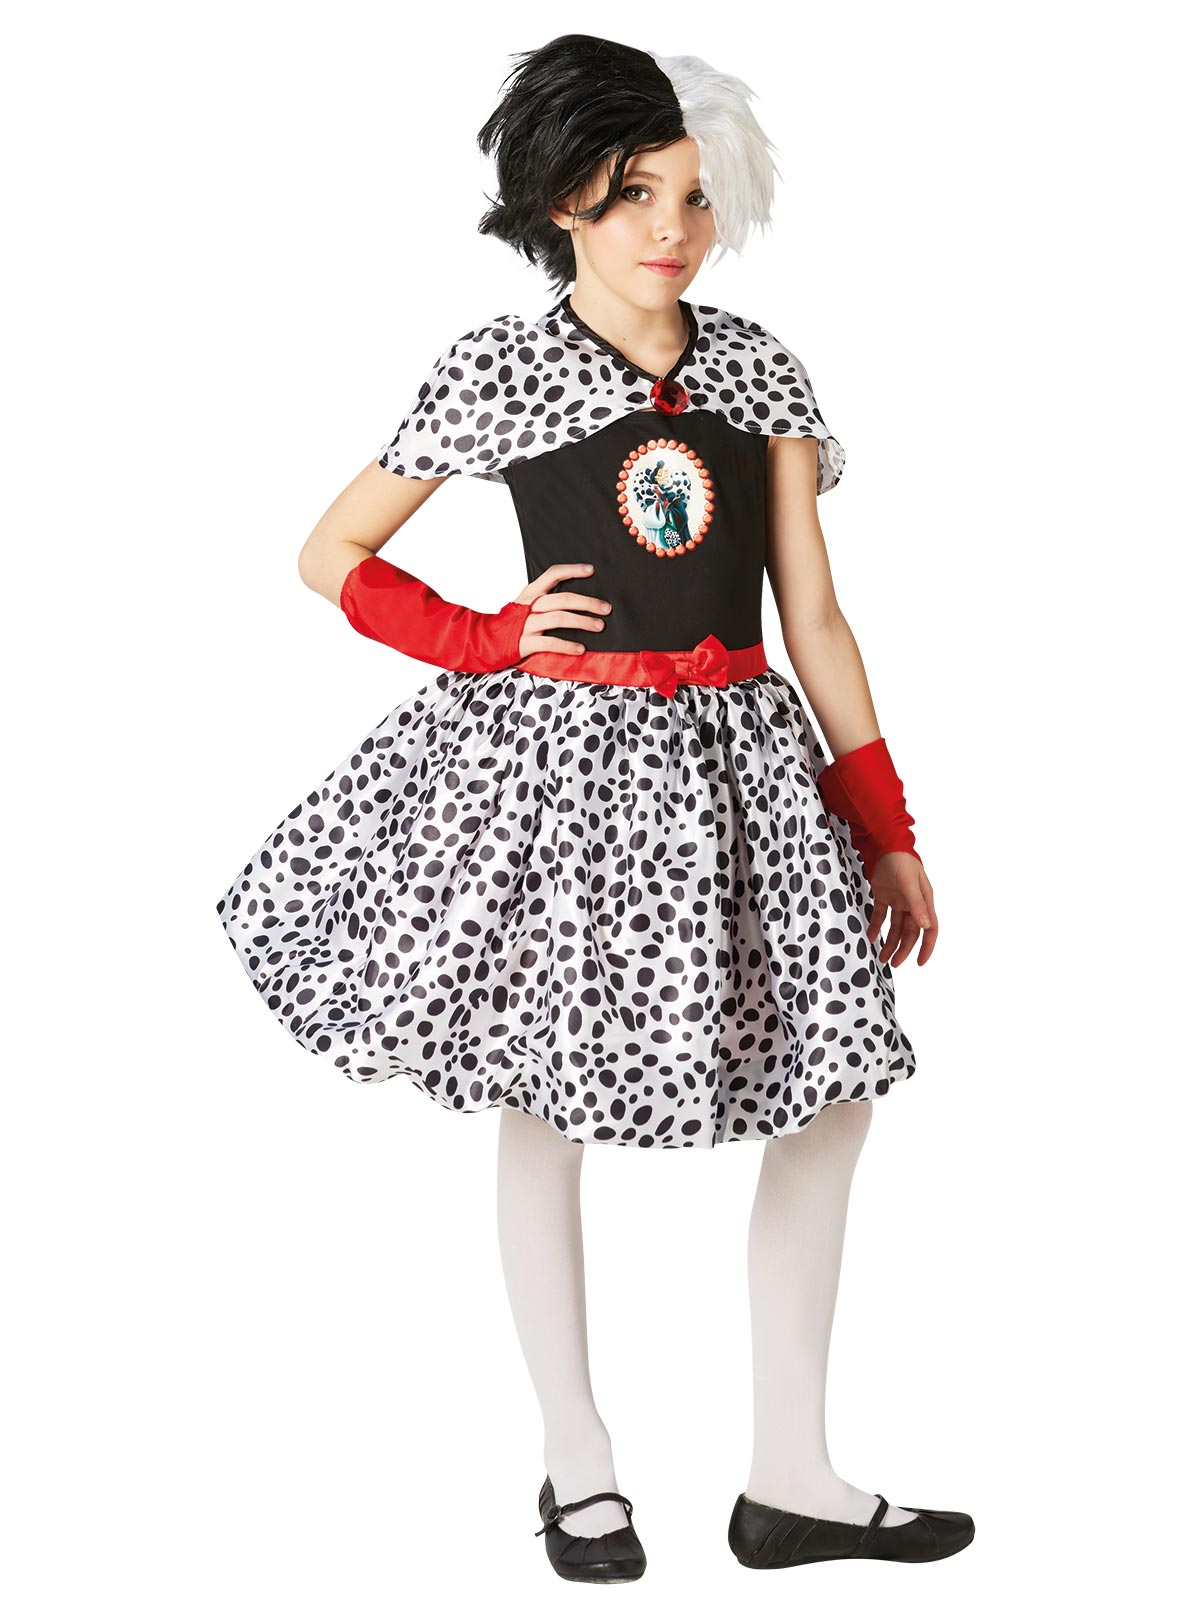 Cruella De Vil Tween Deluxe Costume - Buy Online Only